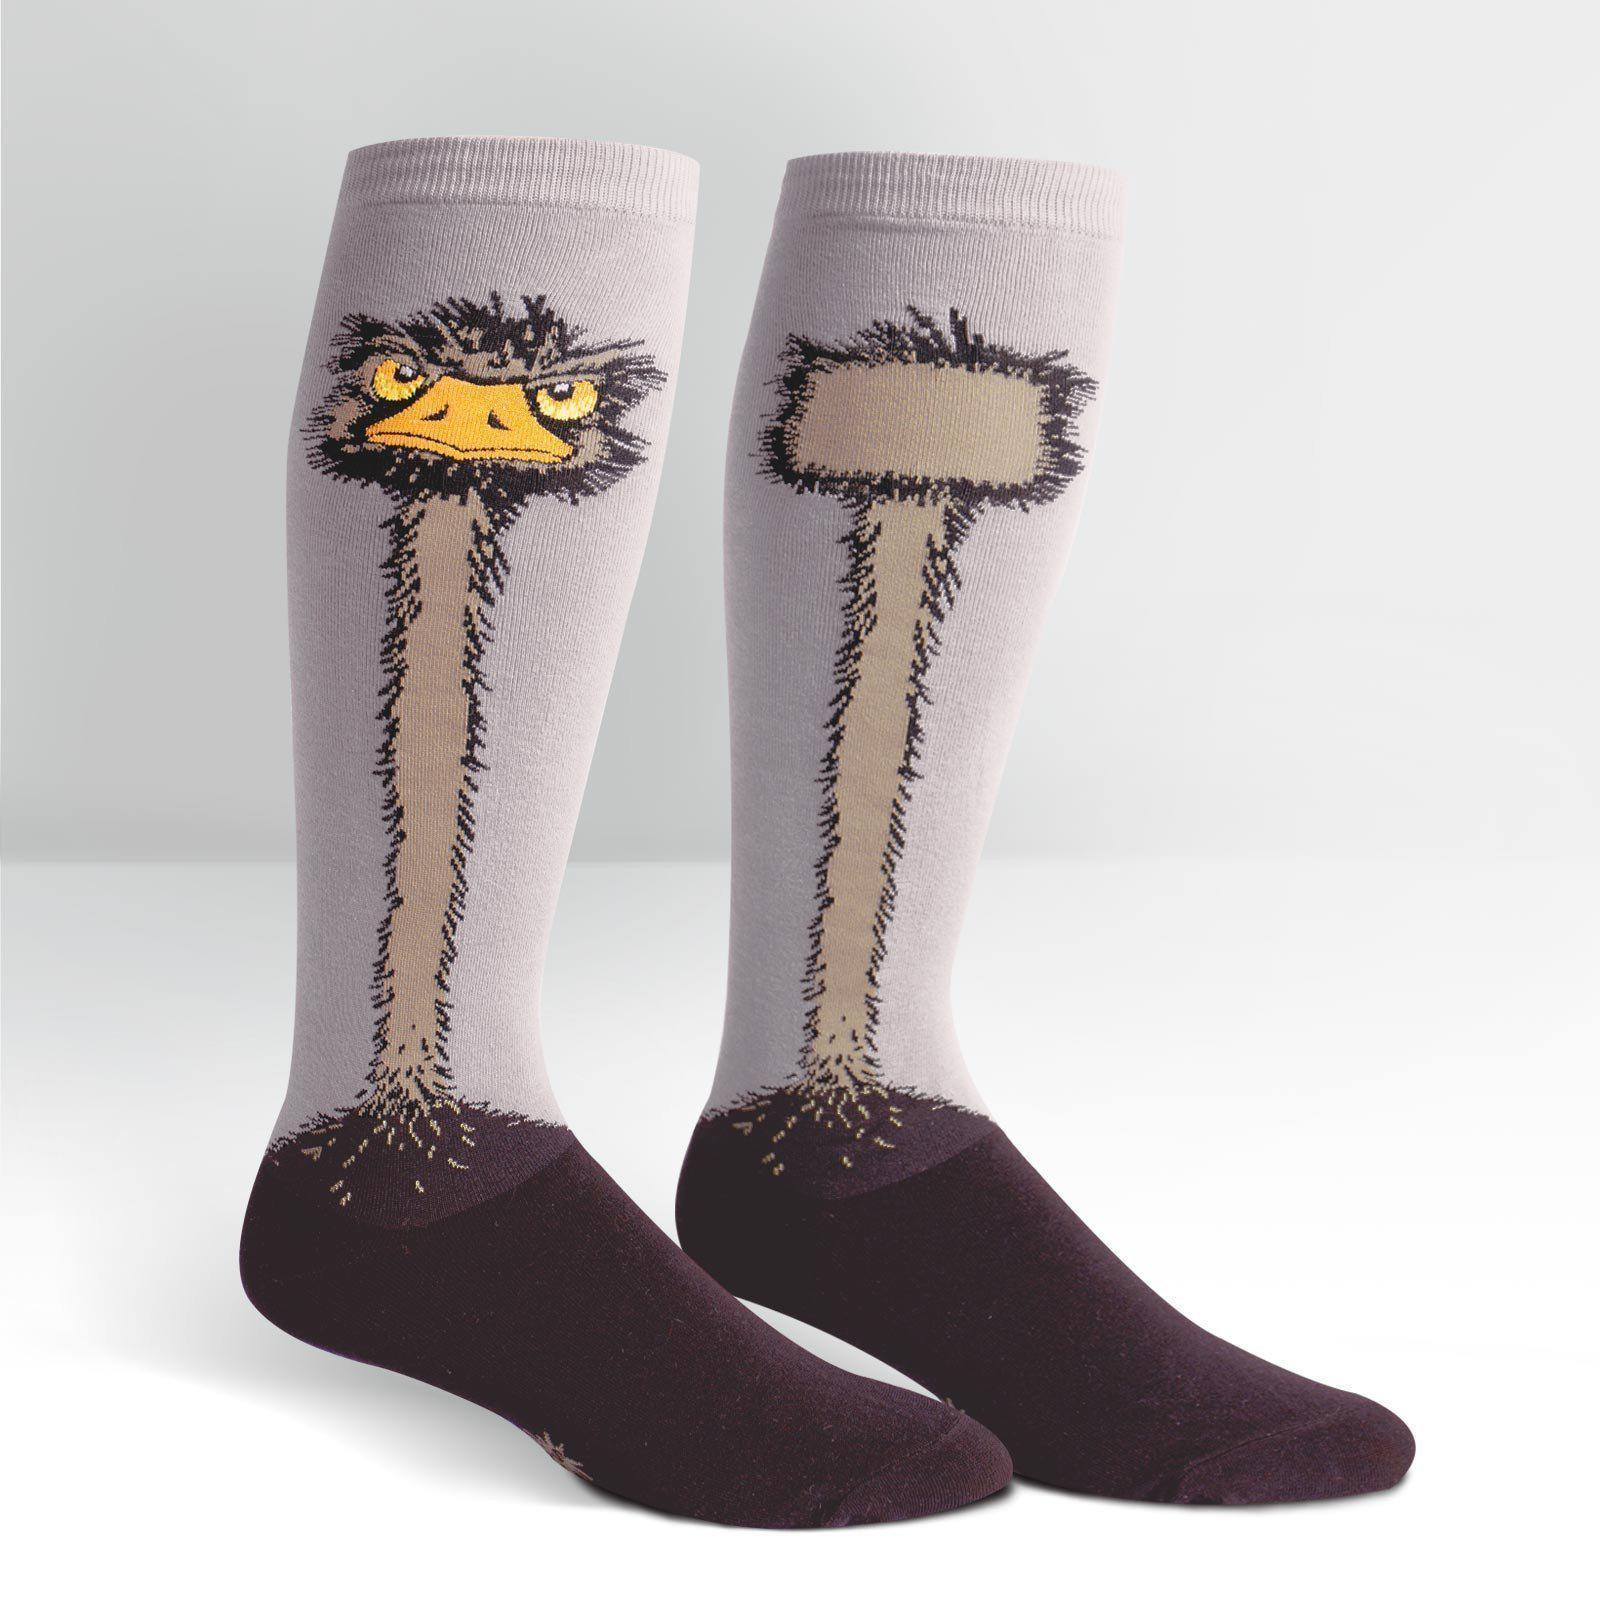 Sock It To Me - Ostrich Knee High Socks | Women's - Knock Your Socks Off